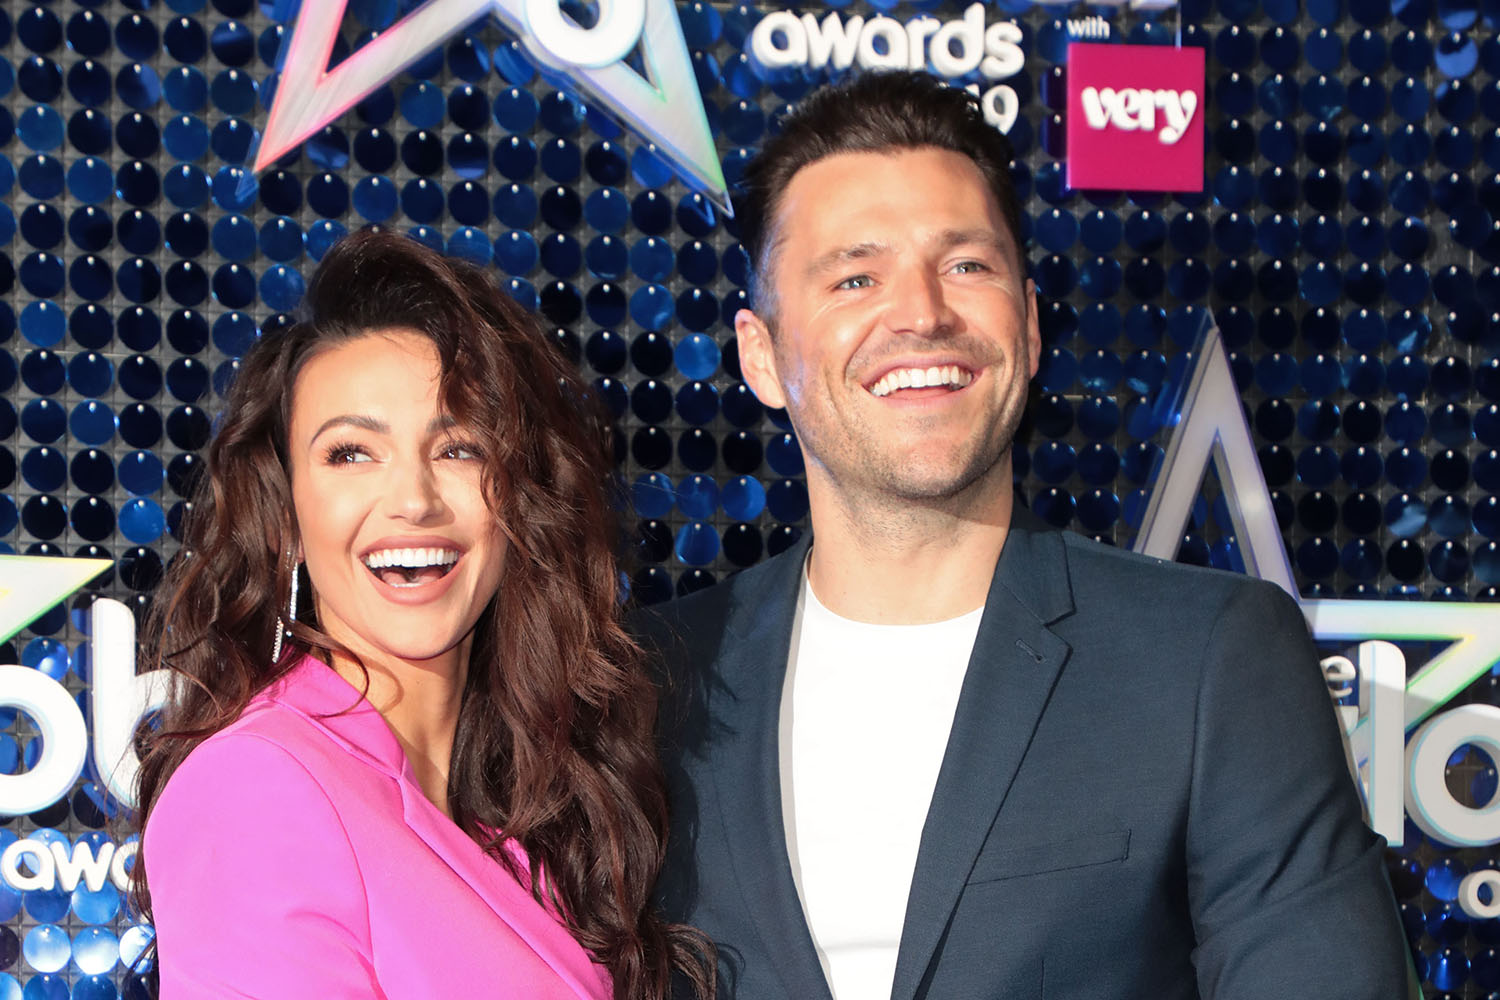 Michelle Keegan and Mark Wright share adorable wedding memories on their fifth anniversary